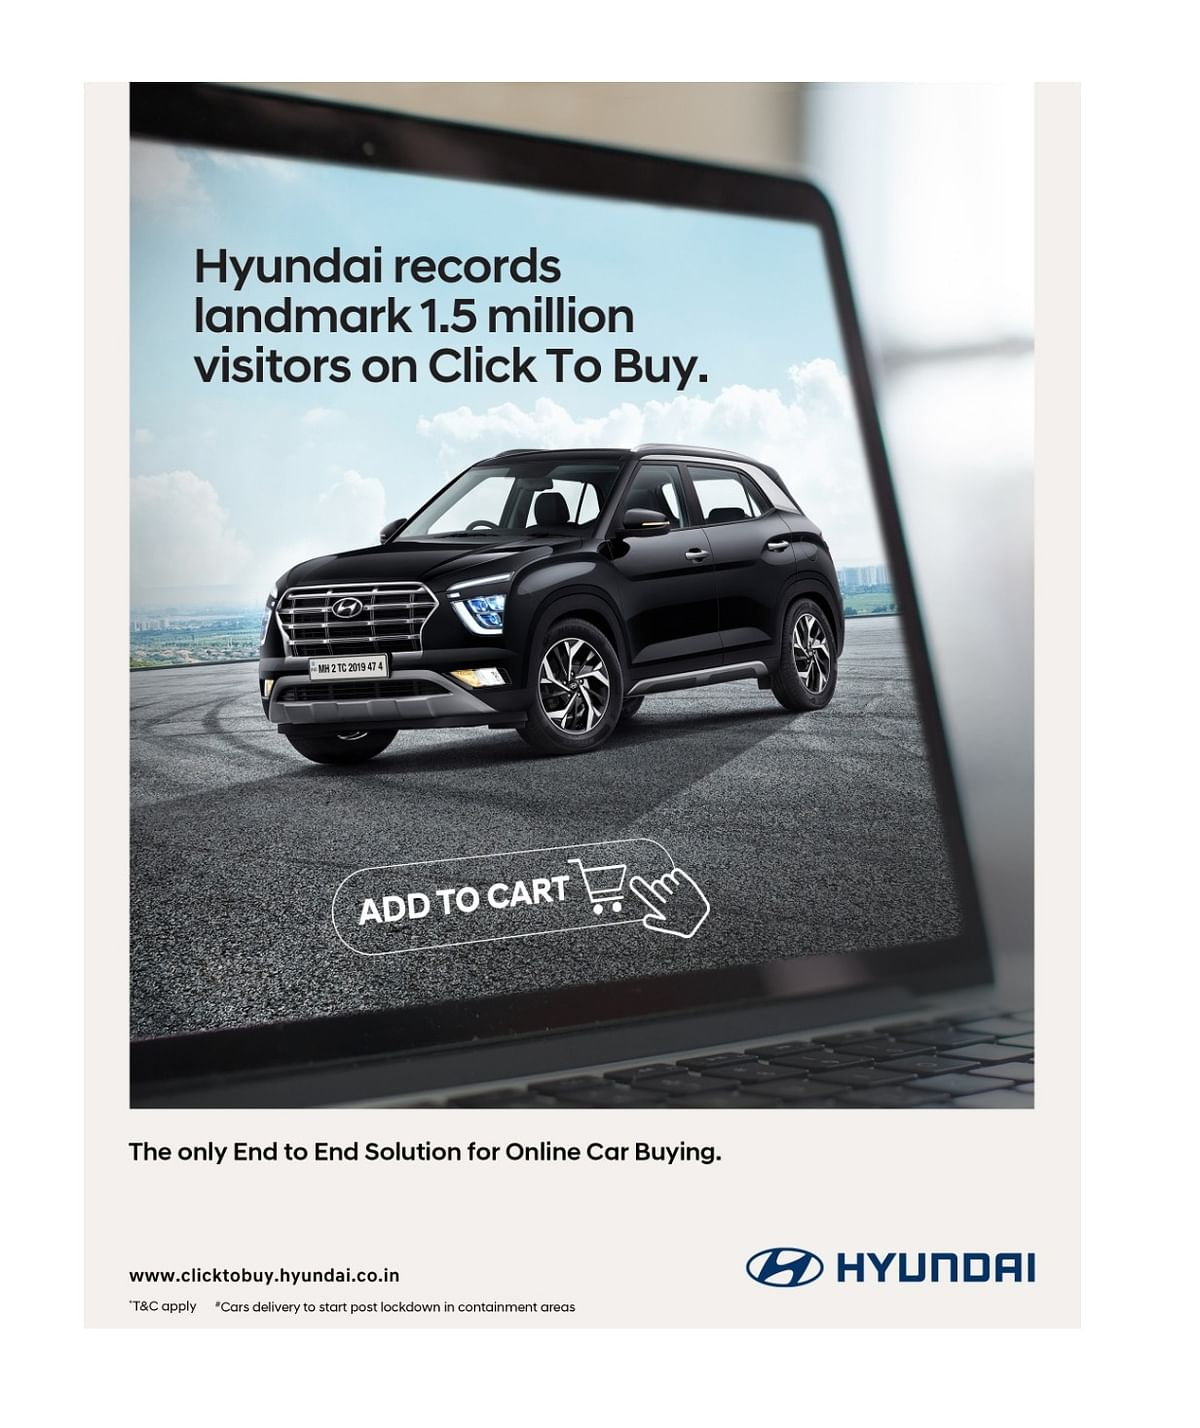 Hyundai has received an outstanding response to its 'Click To Buy' programme